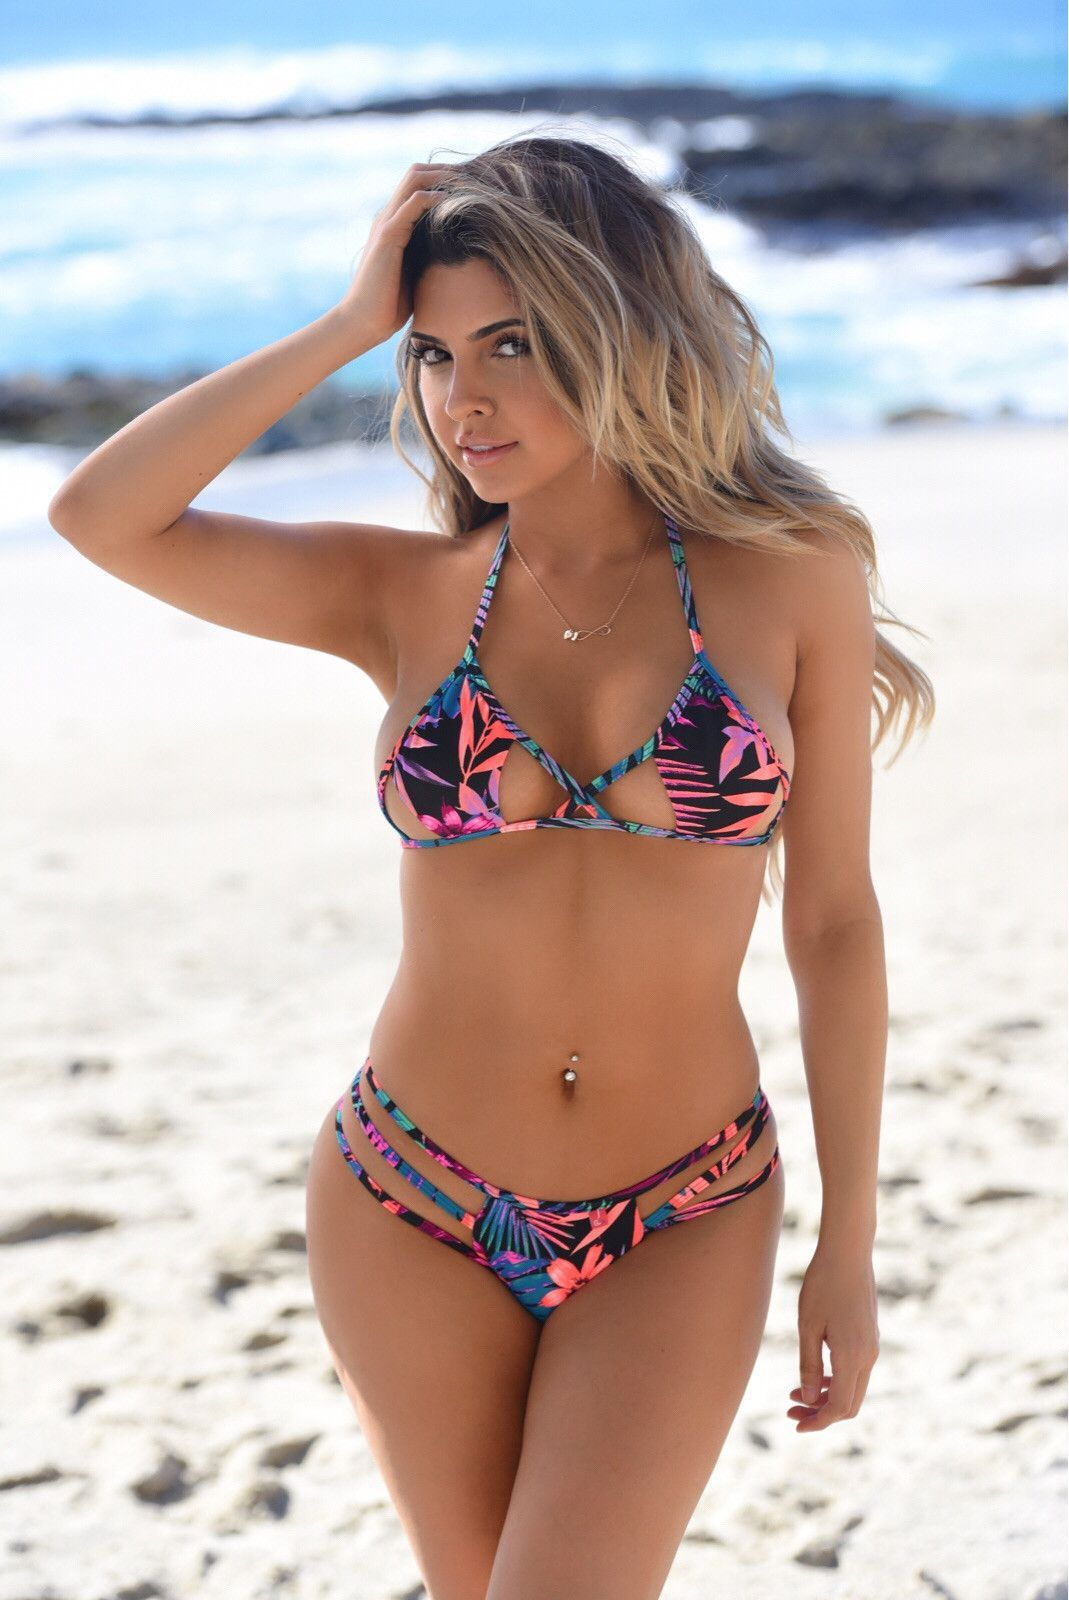 33cfc2b92f33b Mrytle Beach  This bikini is a triangle top with cut-out detail. Paired  with a strappy thong bottom in Orange Tropical. Also available in other  colors.